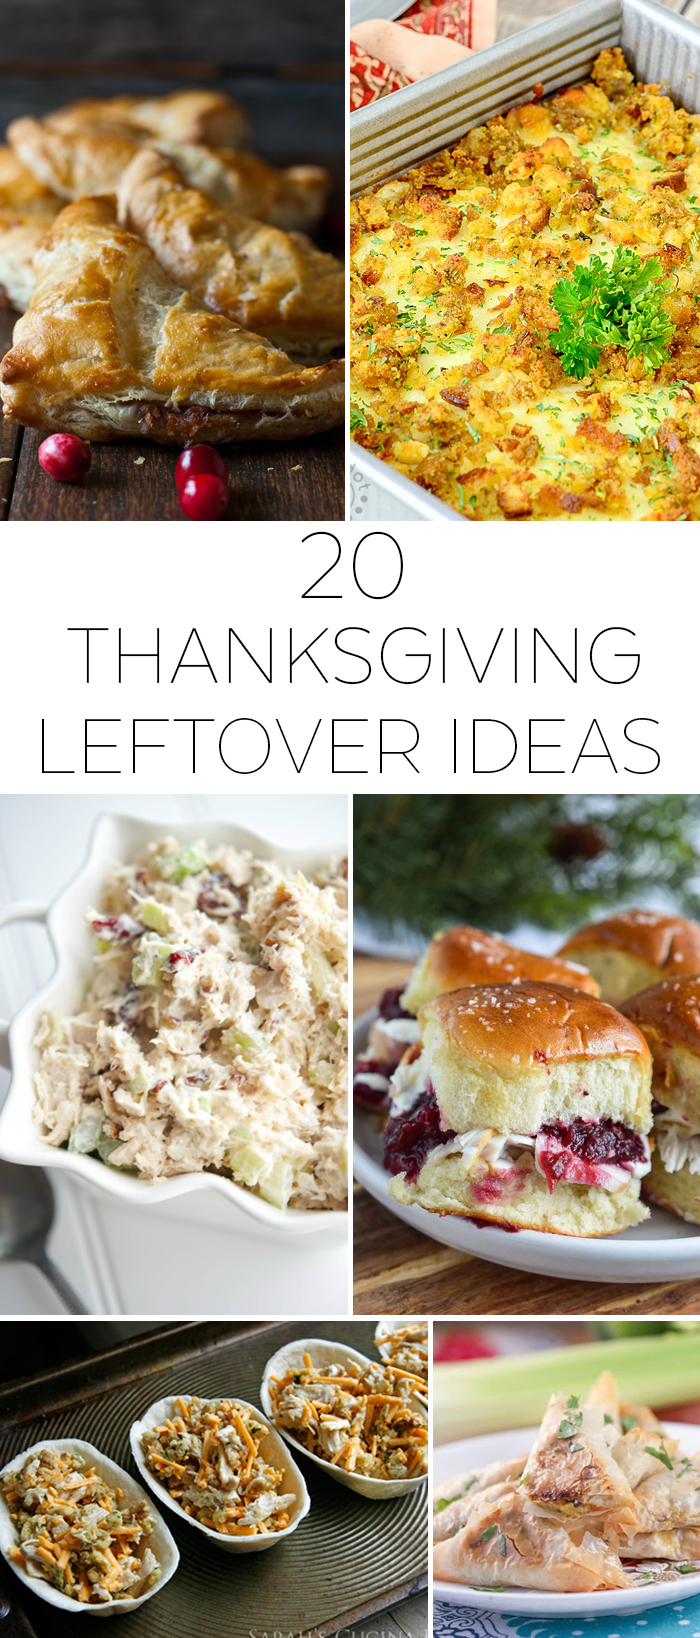 20 Thanksgiving leftover ideas